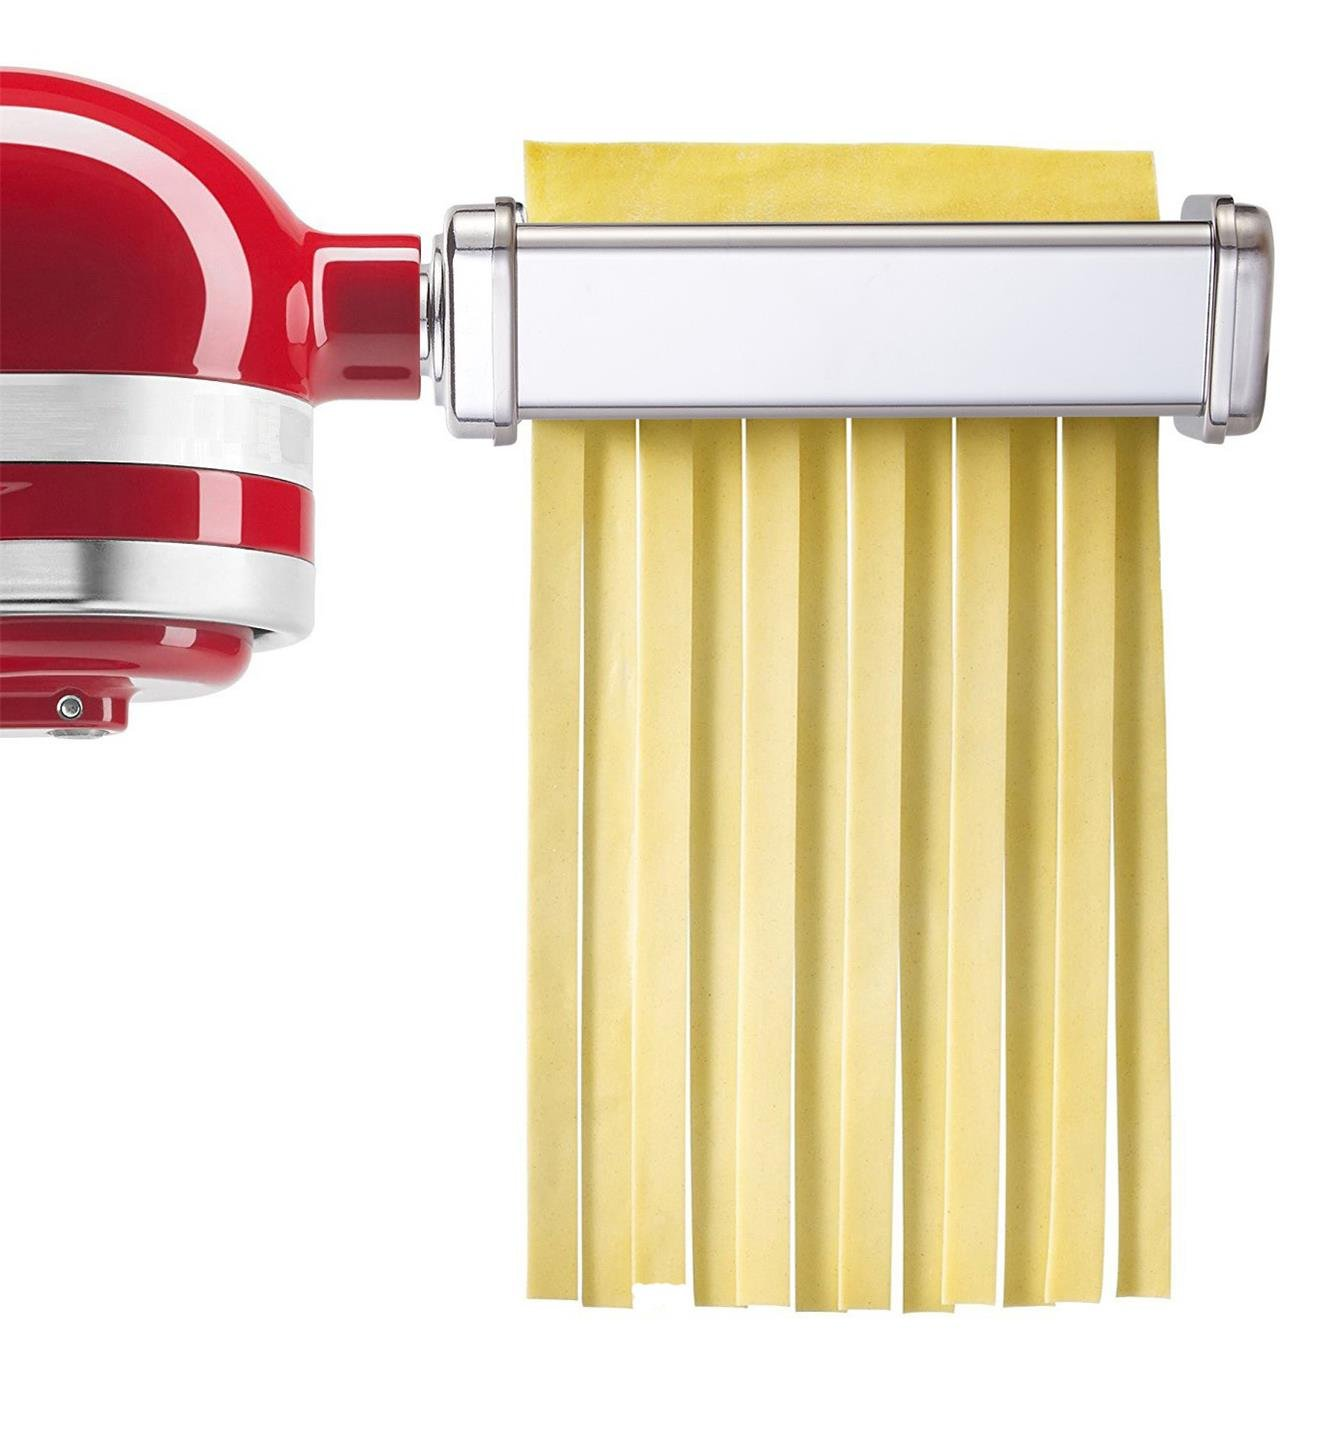 GVODE 3-Piece Pasta Roller and Cutter Set for KitchenAid Stand Mixers,Stainless Steel by GVODE (Image #5)